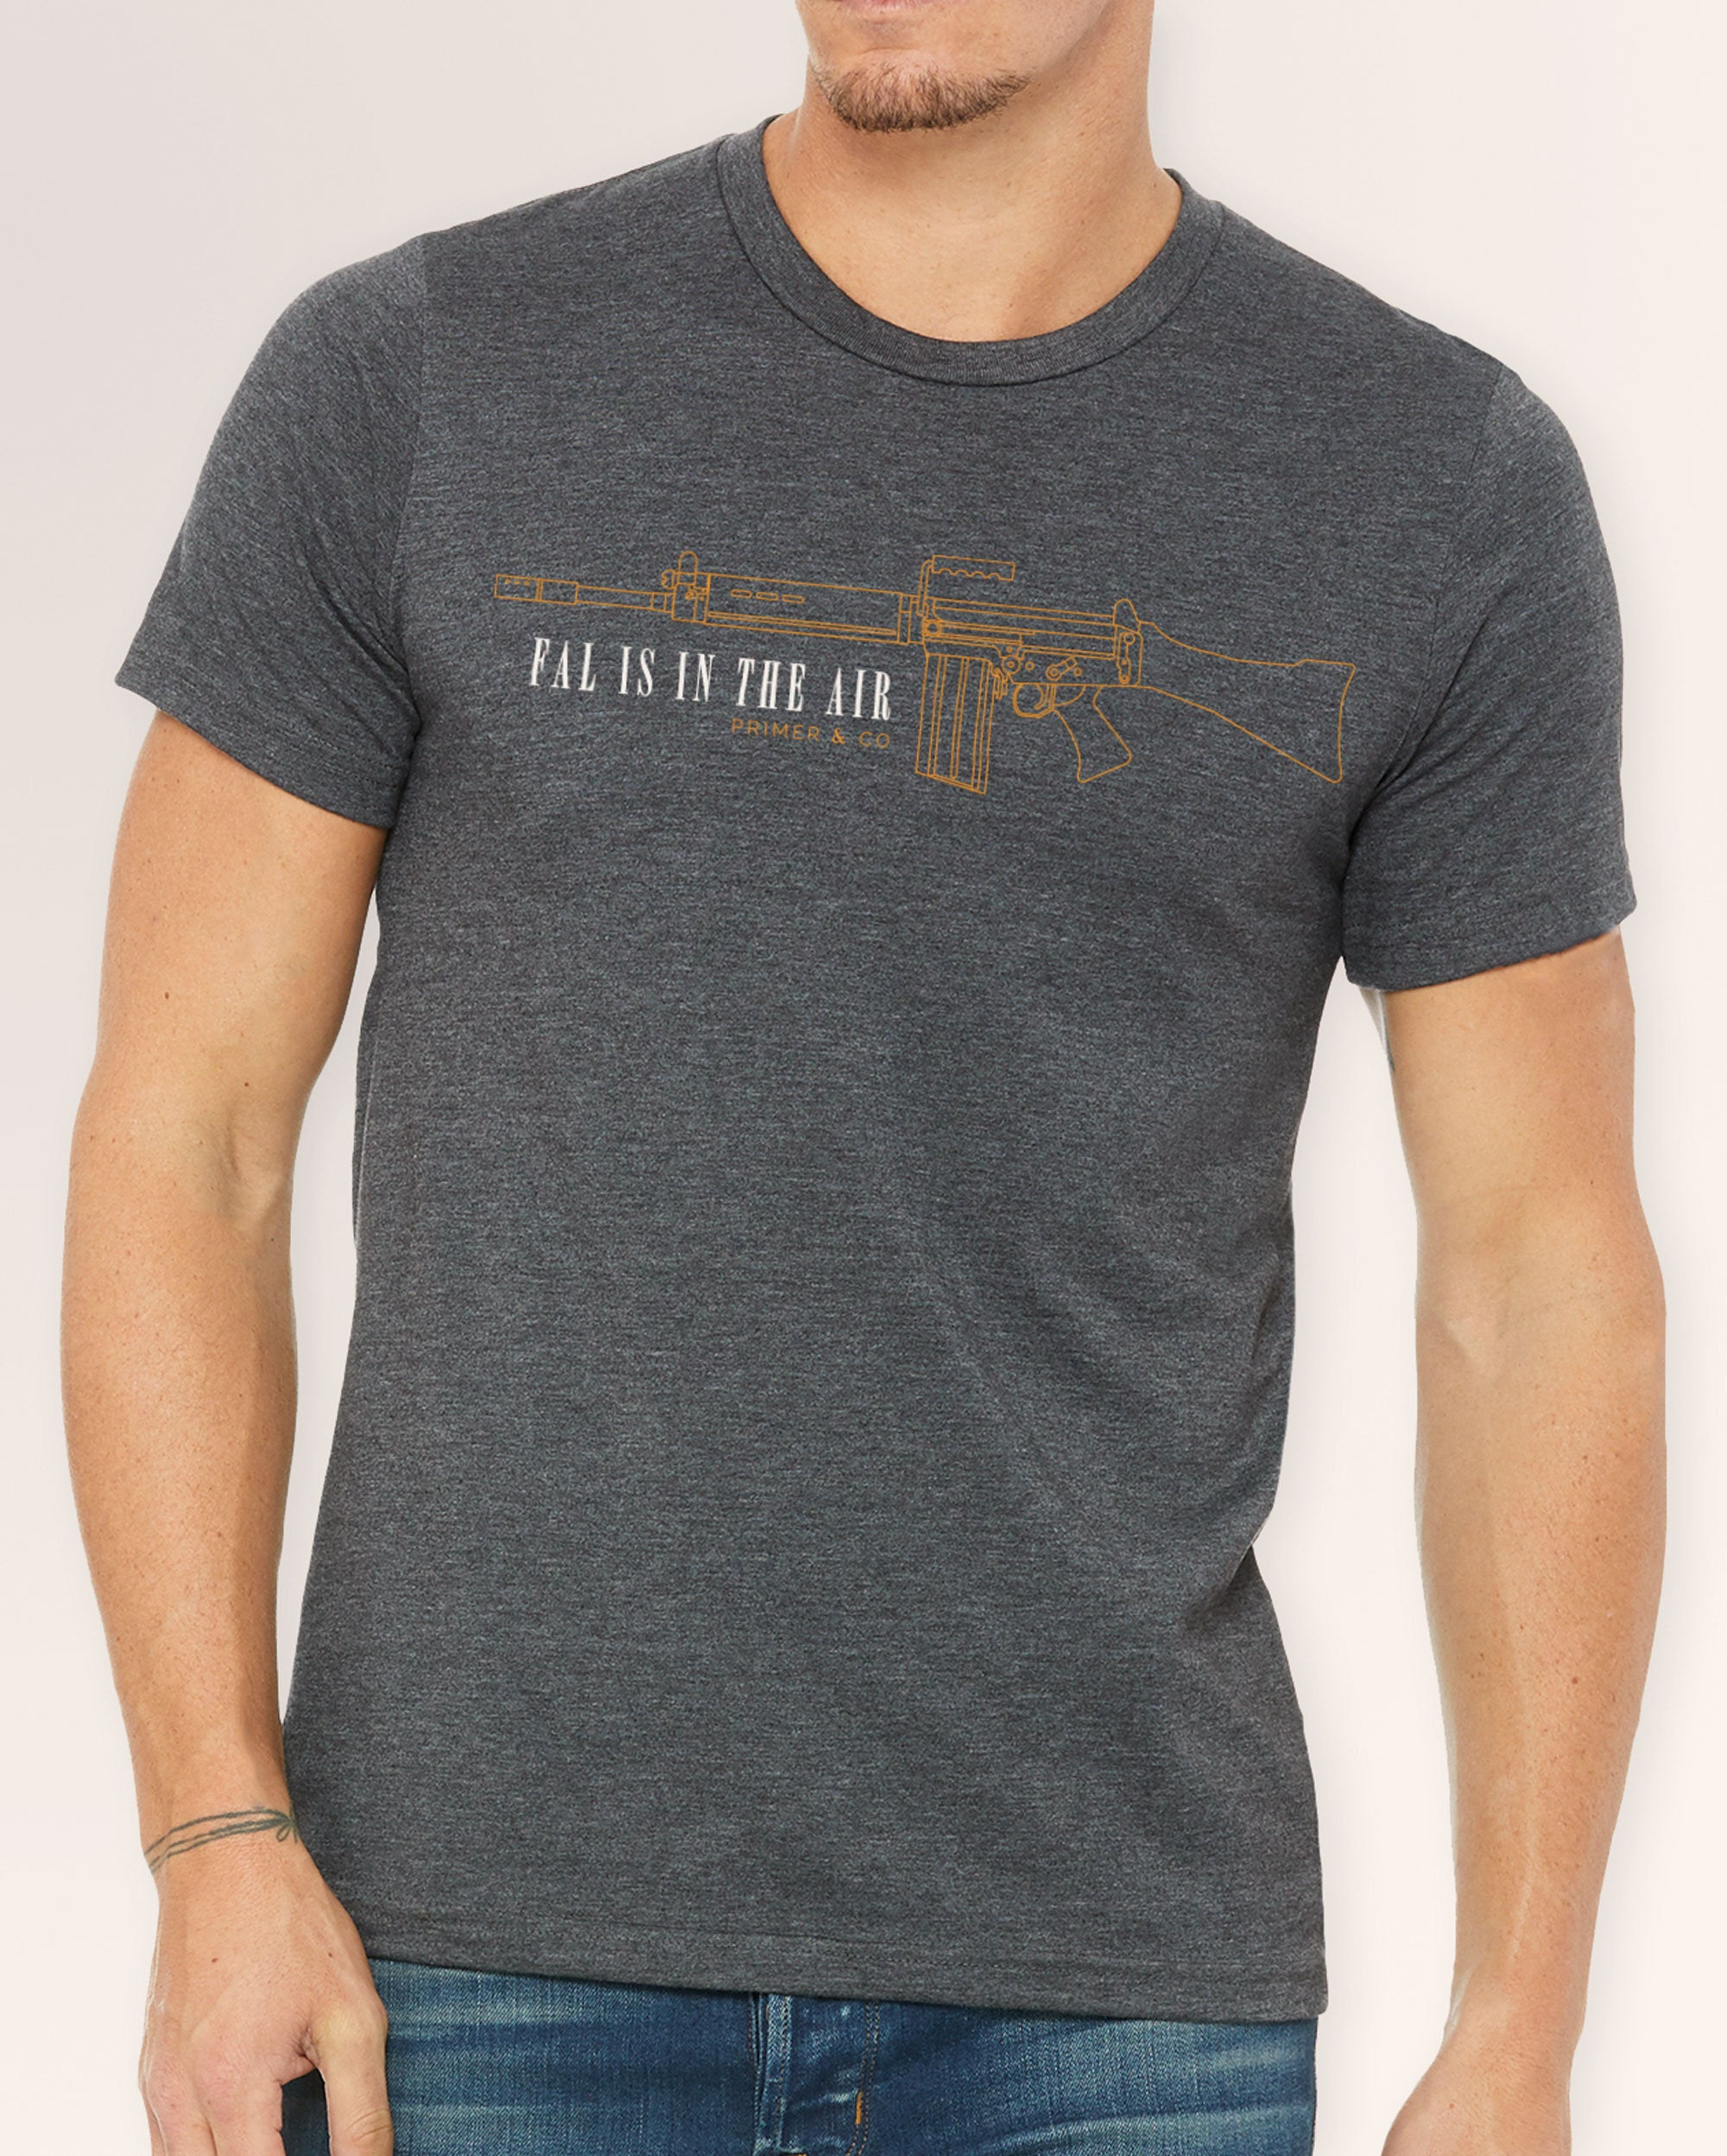 Men's Crew Neck Tee - FAL is in the Air